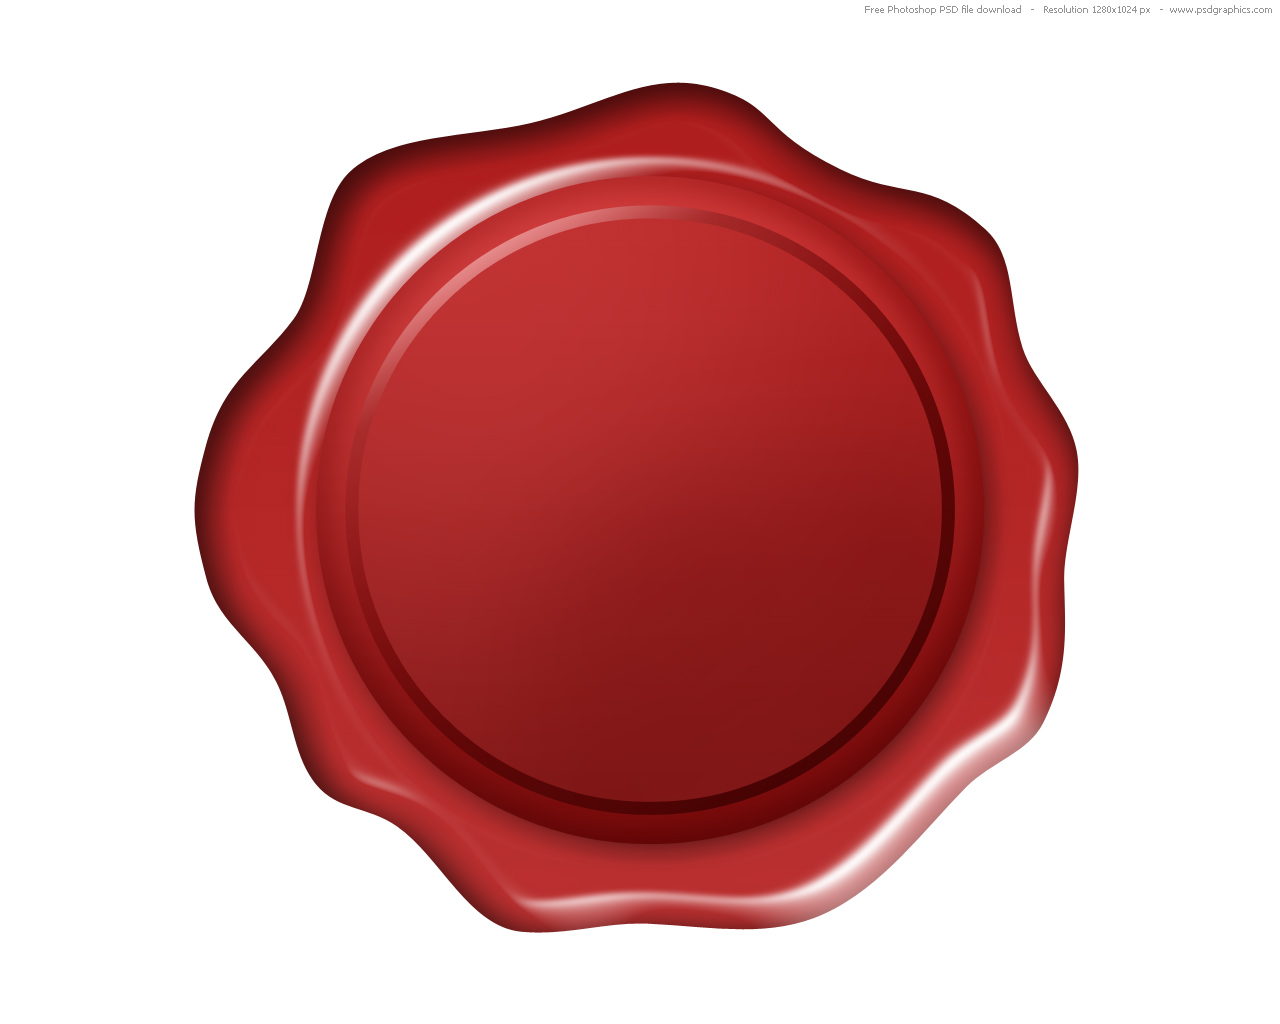 1280x1024 Wax Seal Png Transparent Wax Seal.png Images. Pluspng